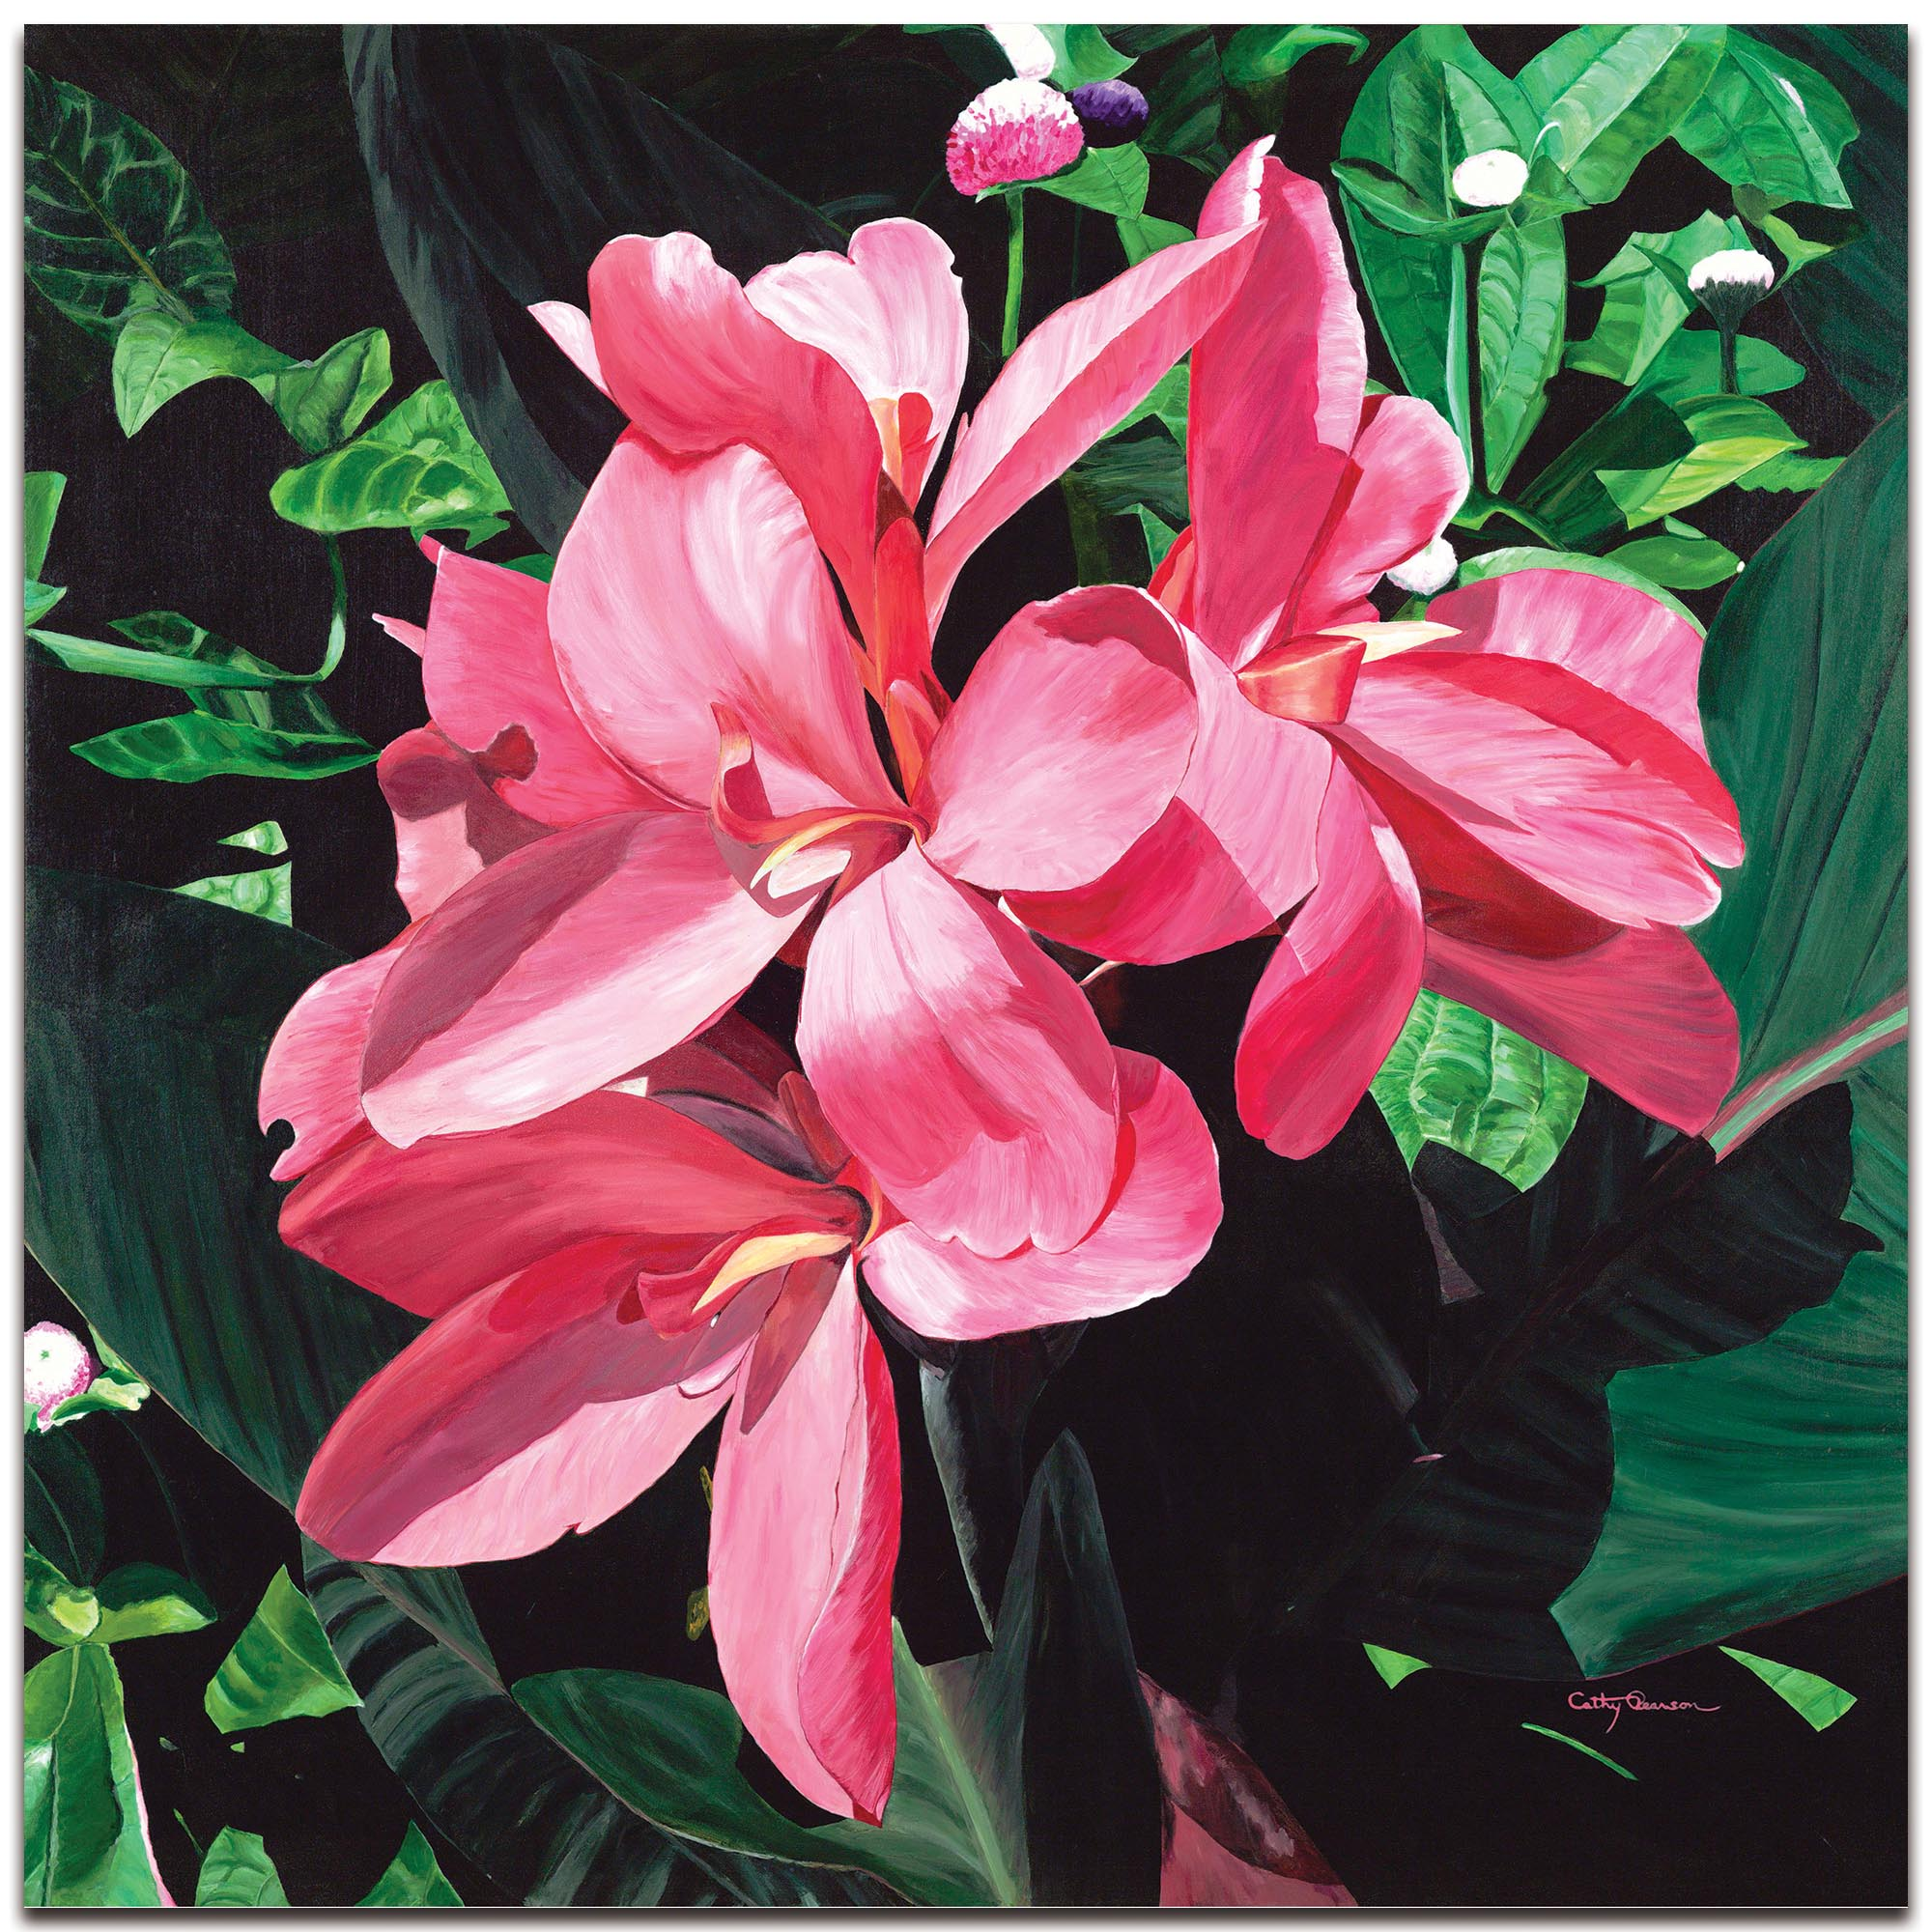 Traditional Wall Art 'Exotic Lilies' - Floral Decor on Metal or Plexiglass